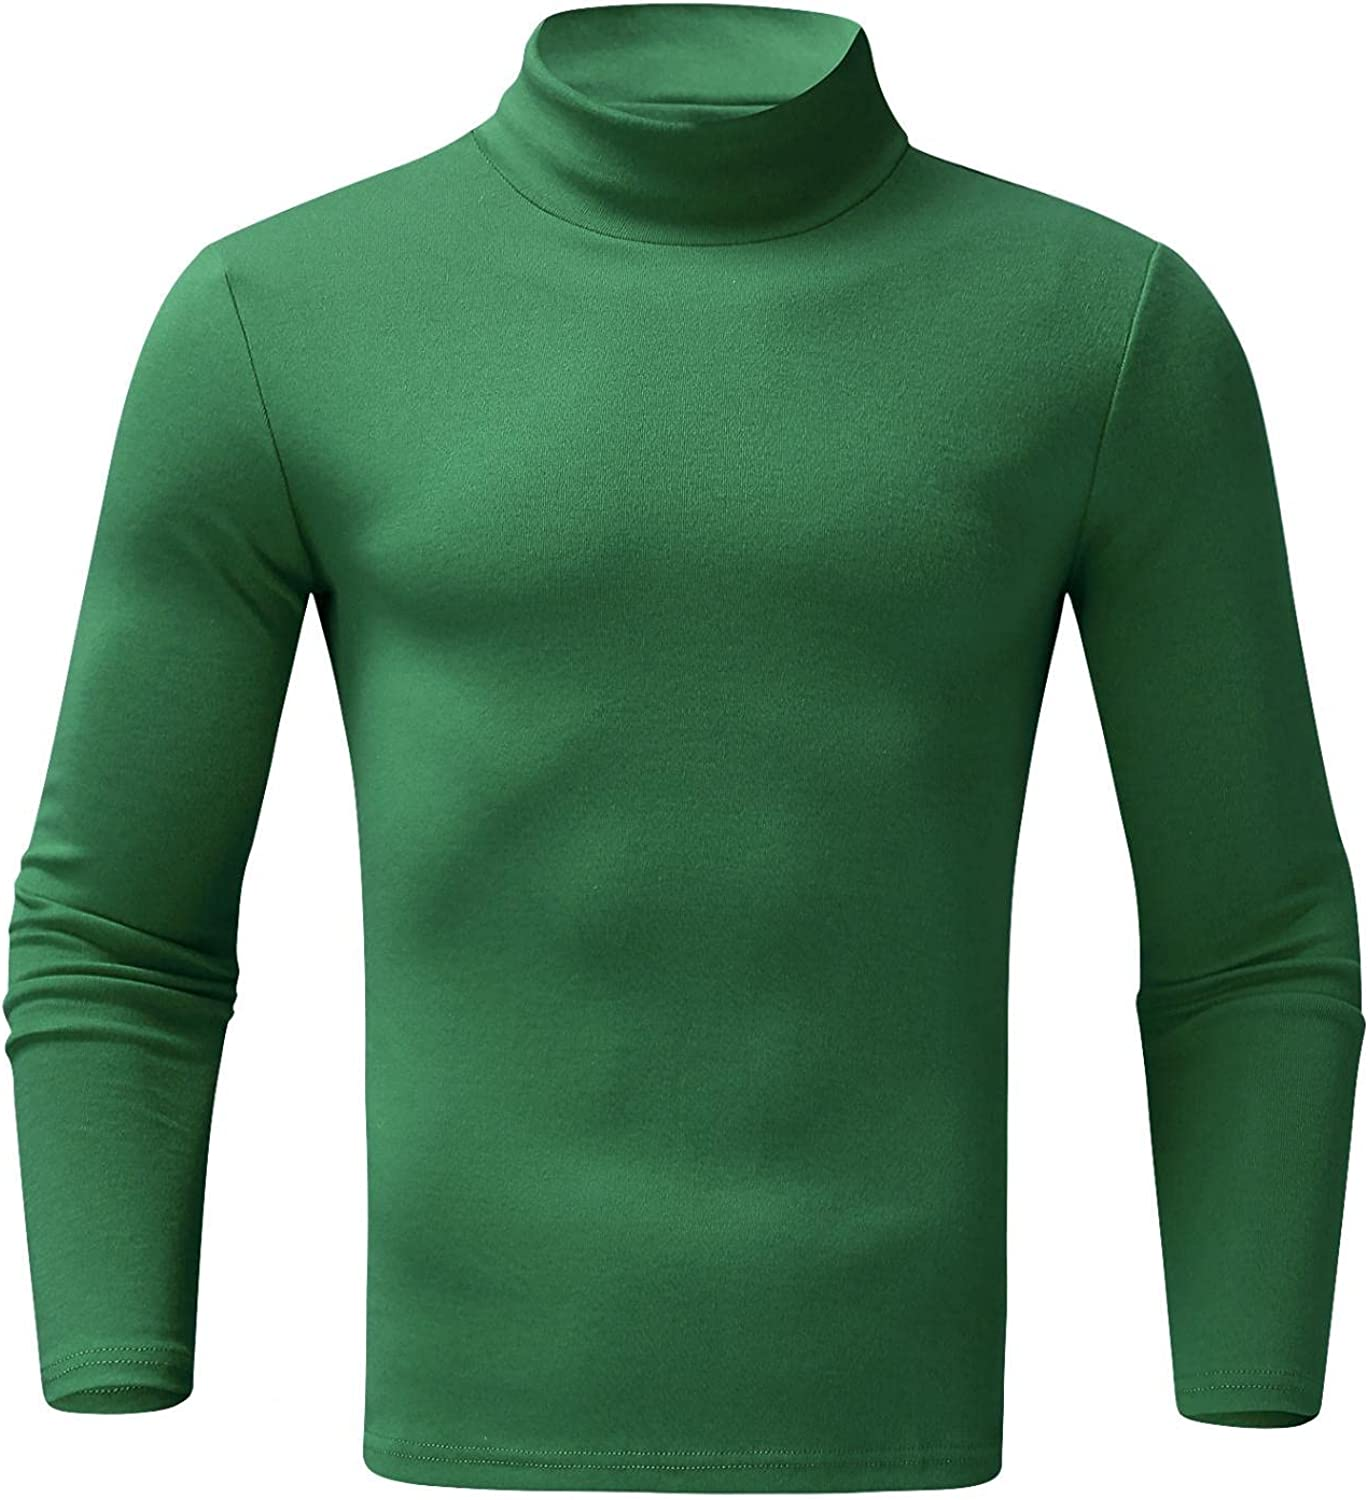 Mens Pullover Tops Solid Knitted Long Sleeeve Sweatershirts Casual Lightweight Thin Turtleneck Blouse Slim Fit Shirts